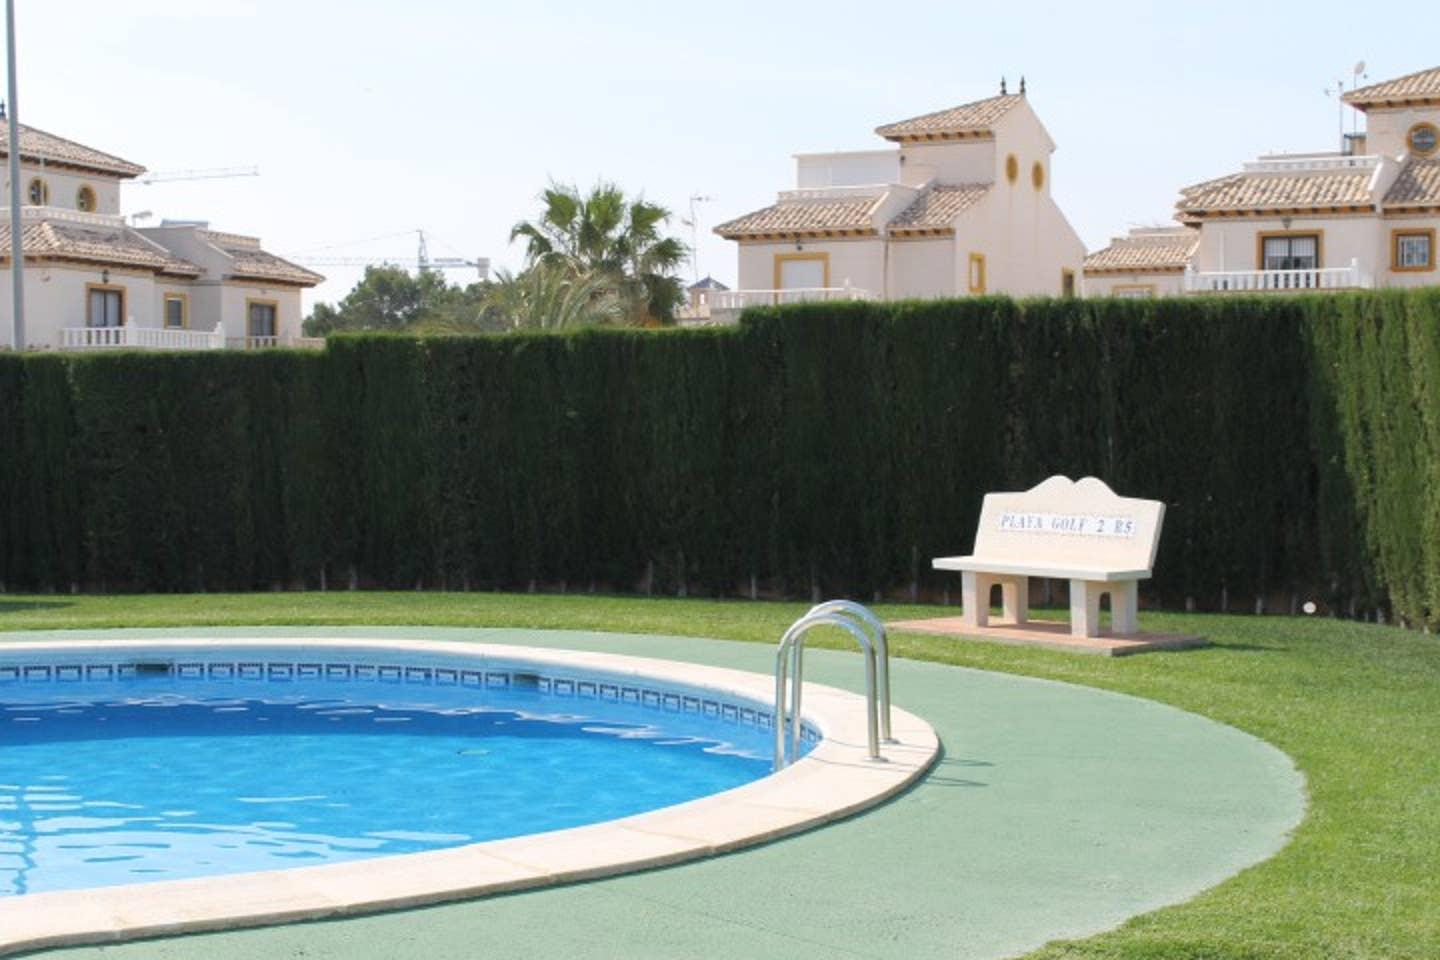 Playa Golf 1st floor apartment & com pool P248 photo 28557132